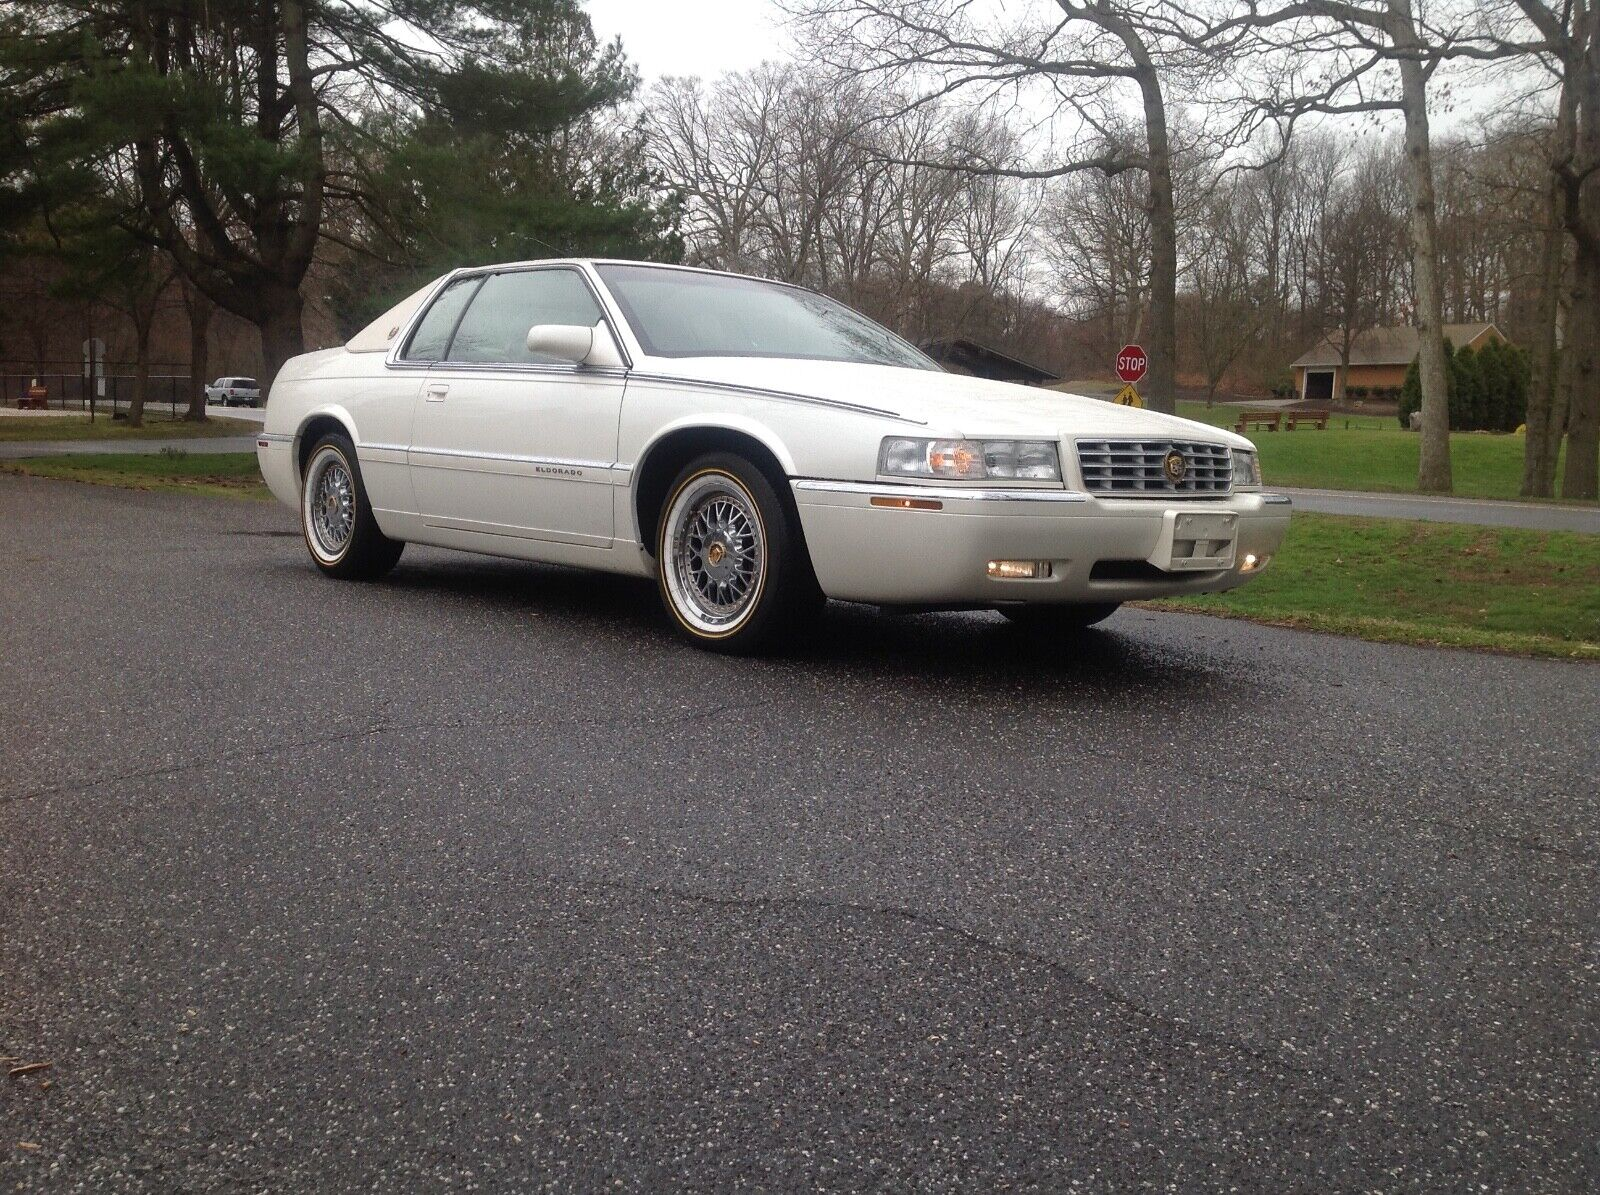 cadillac eldorado 1996 for sale exterior color white cadillac eldorado 1996 for sale